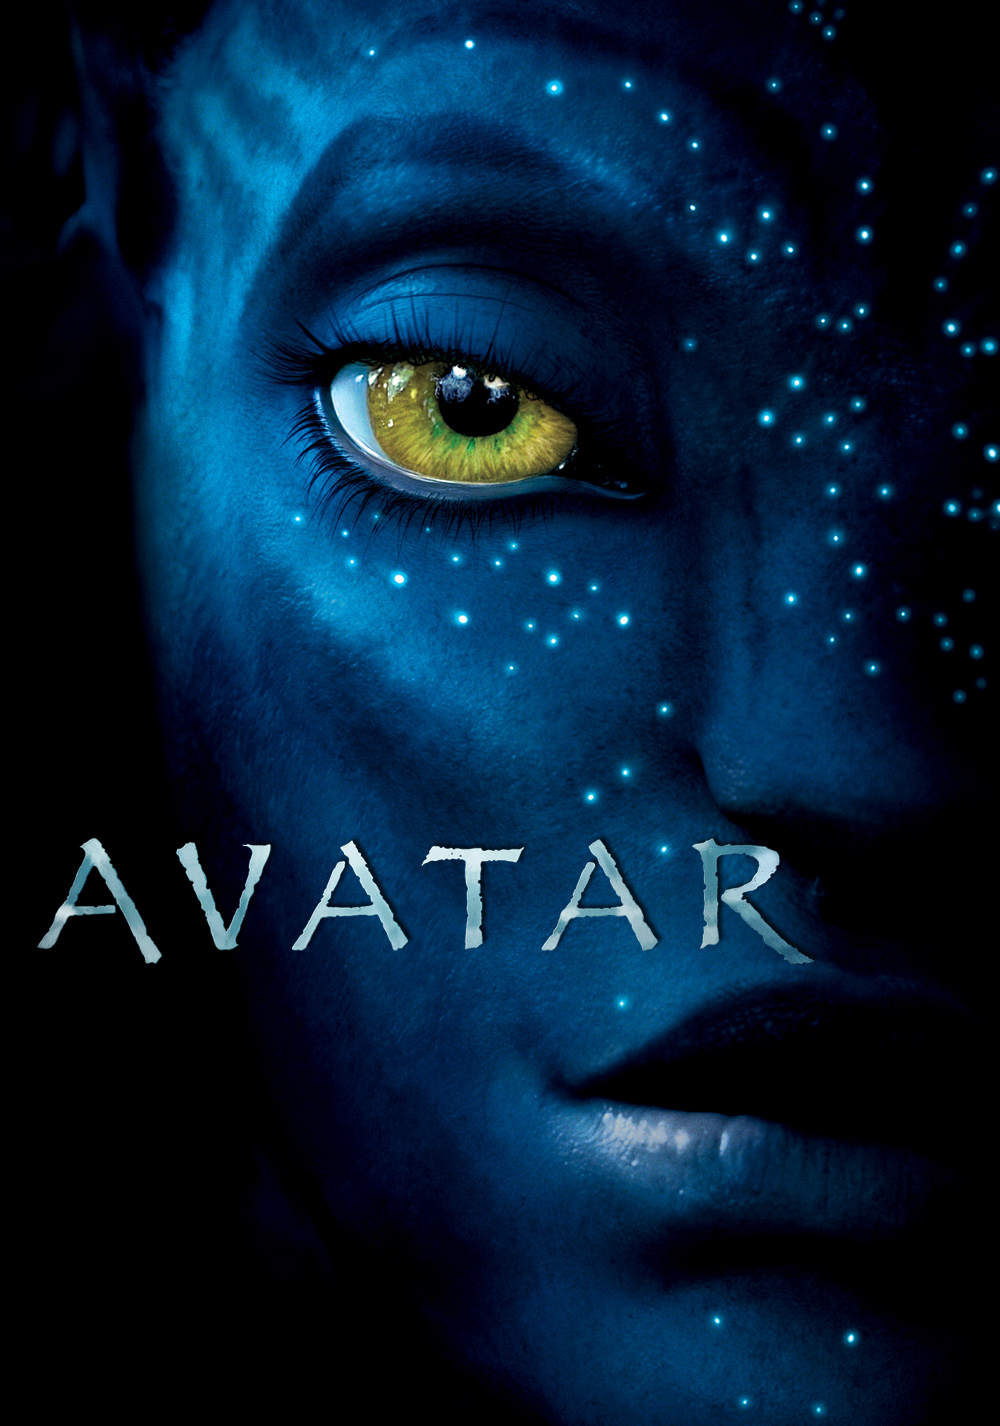 AVATAR (2009) MOVIE TAMIL DUBBED HD